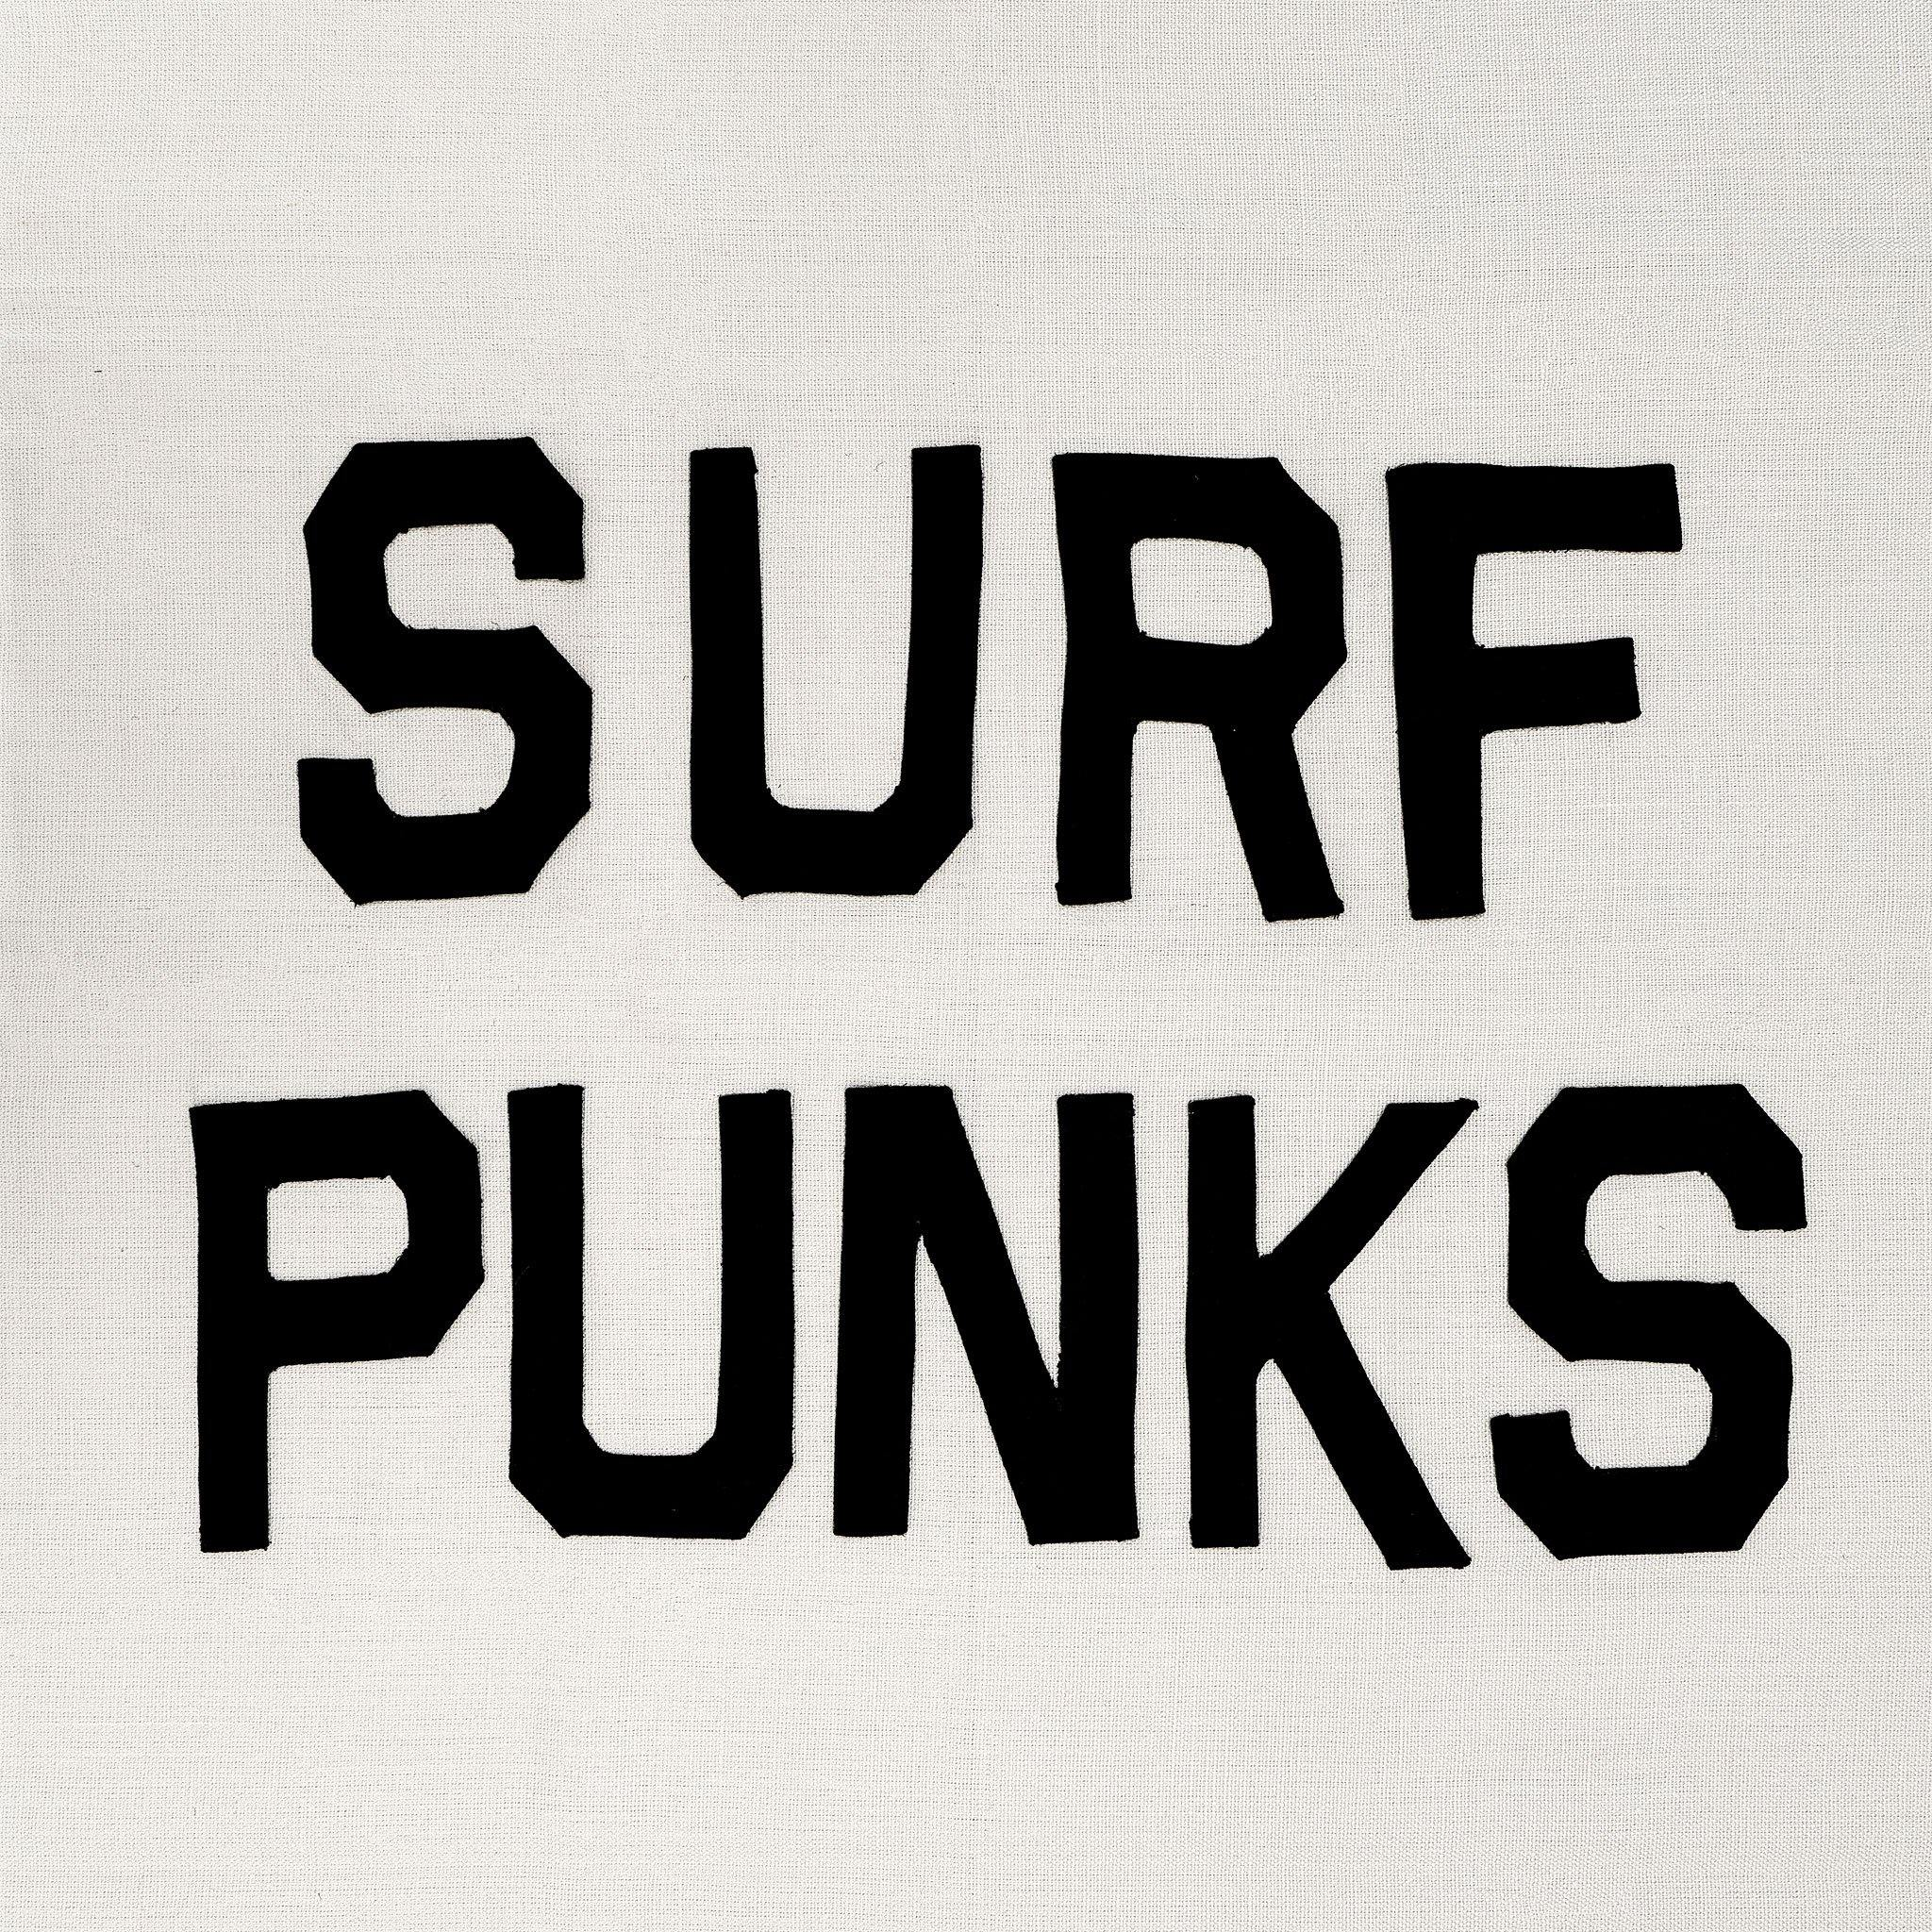 SURF PUNKS, Object  by  SURF PUNKS Tappan